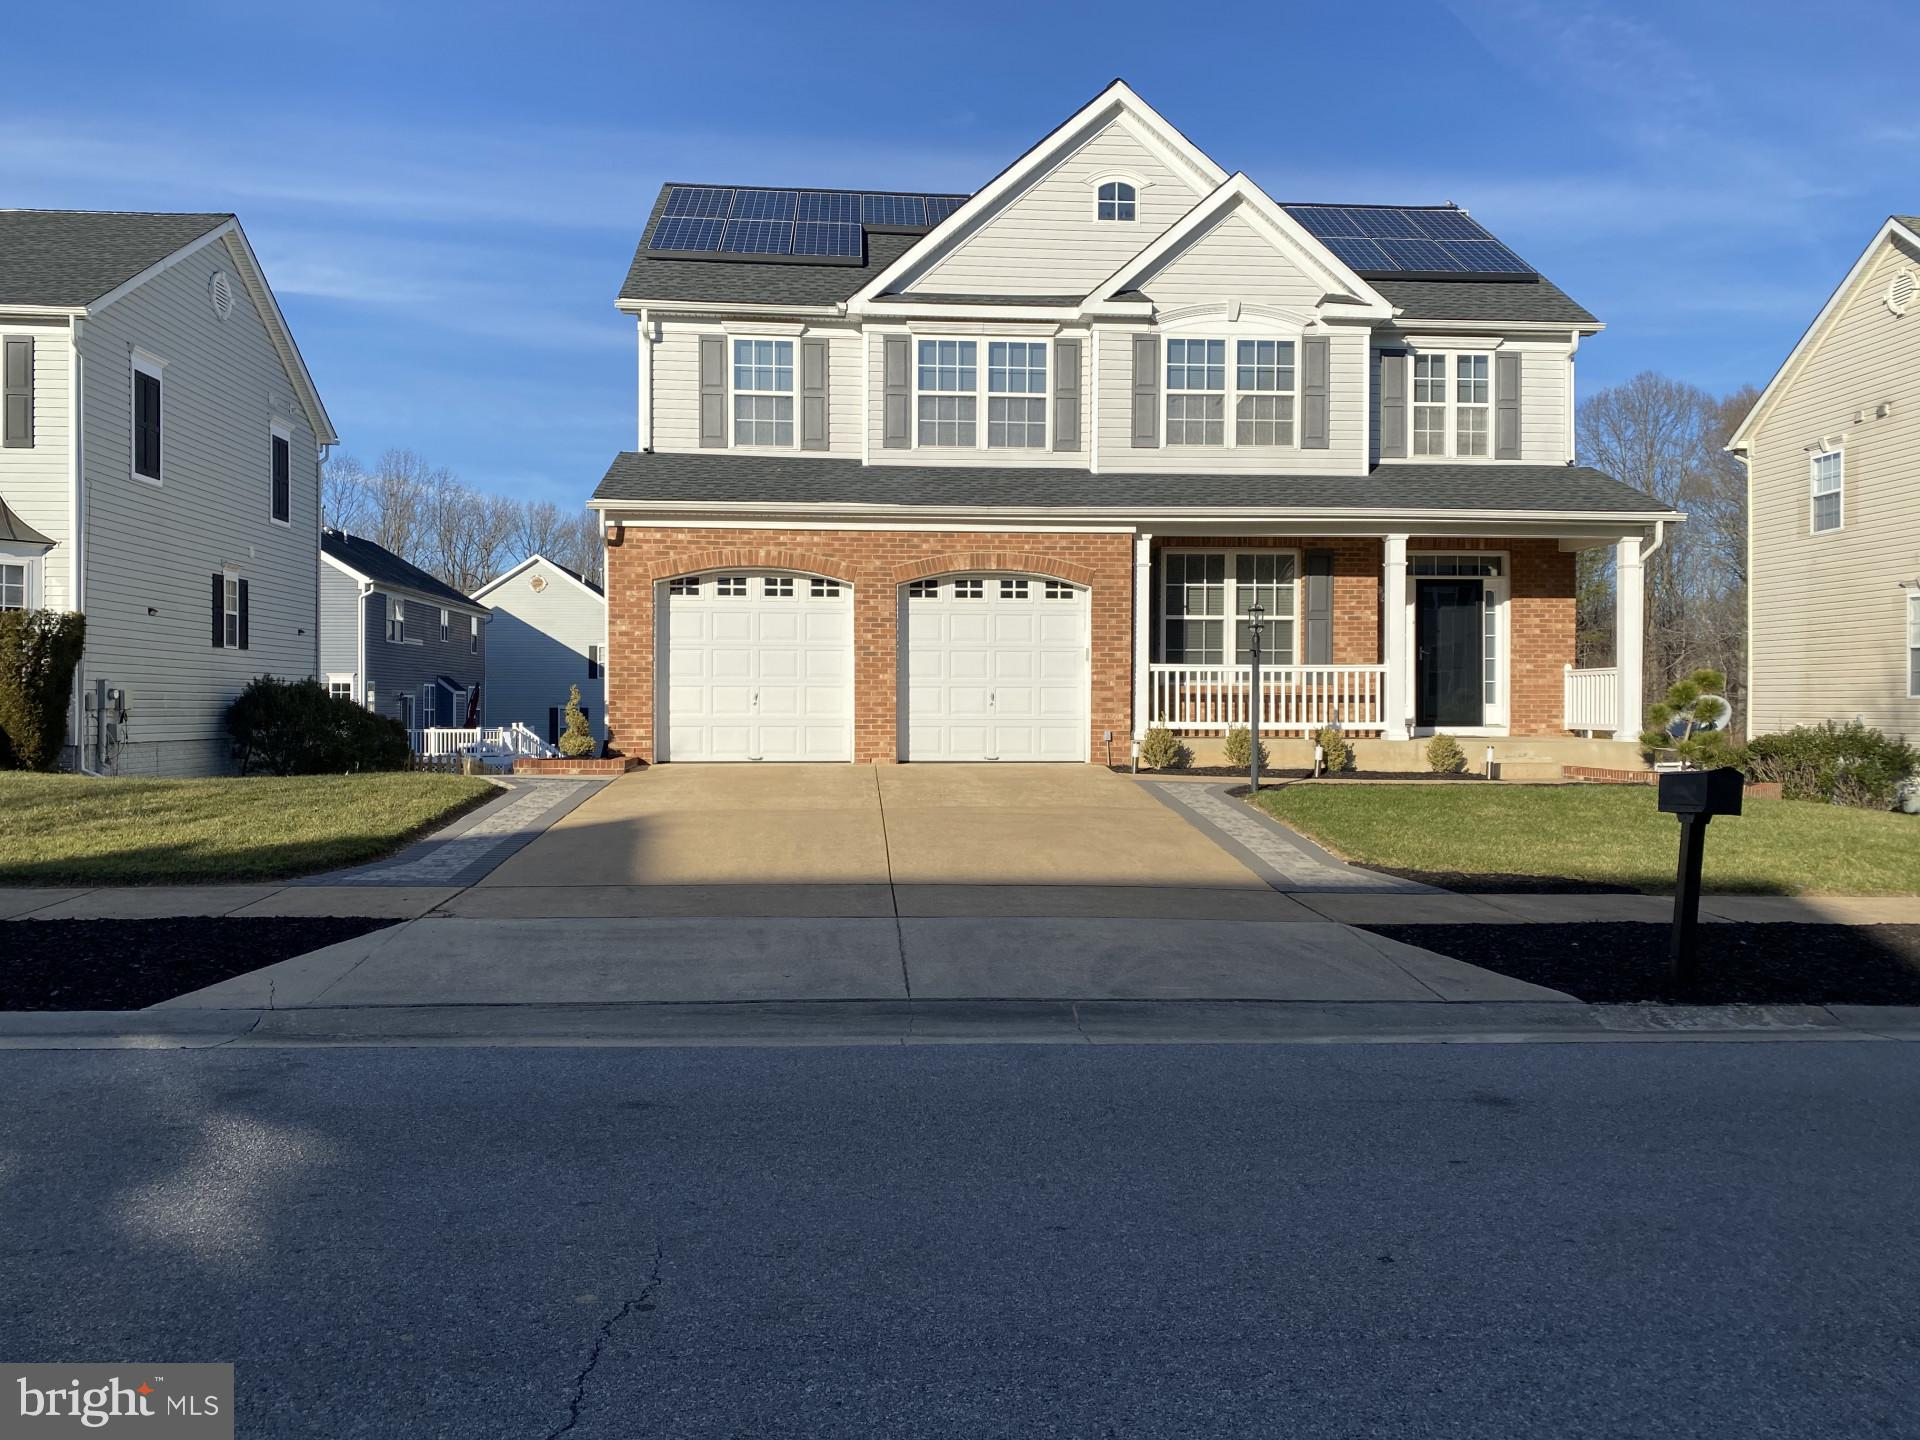 A truly Move-IN Ready home located in the popular Wexford Village II community in the heart of Waldo